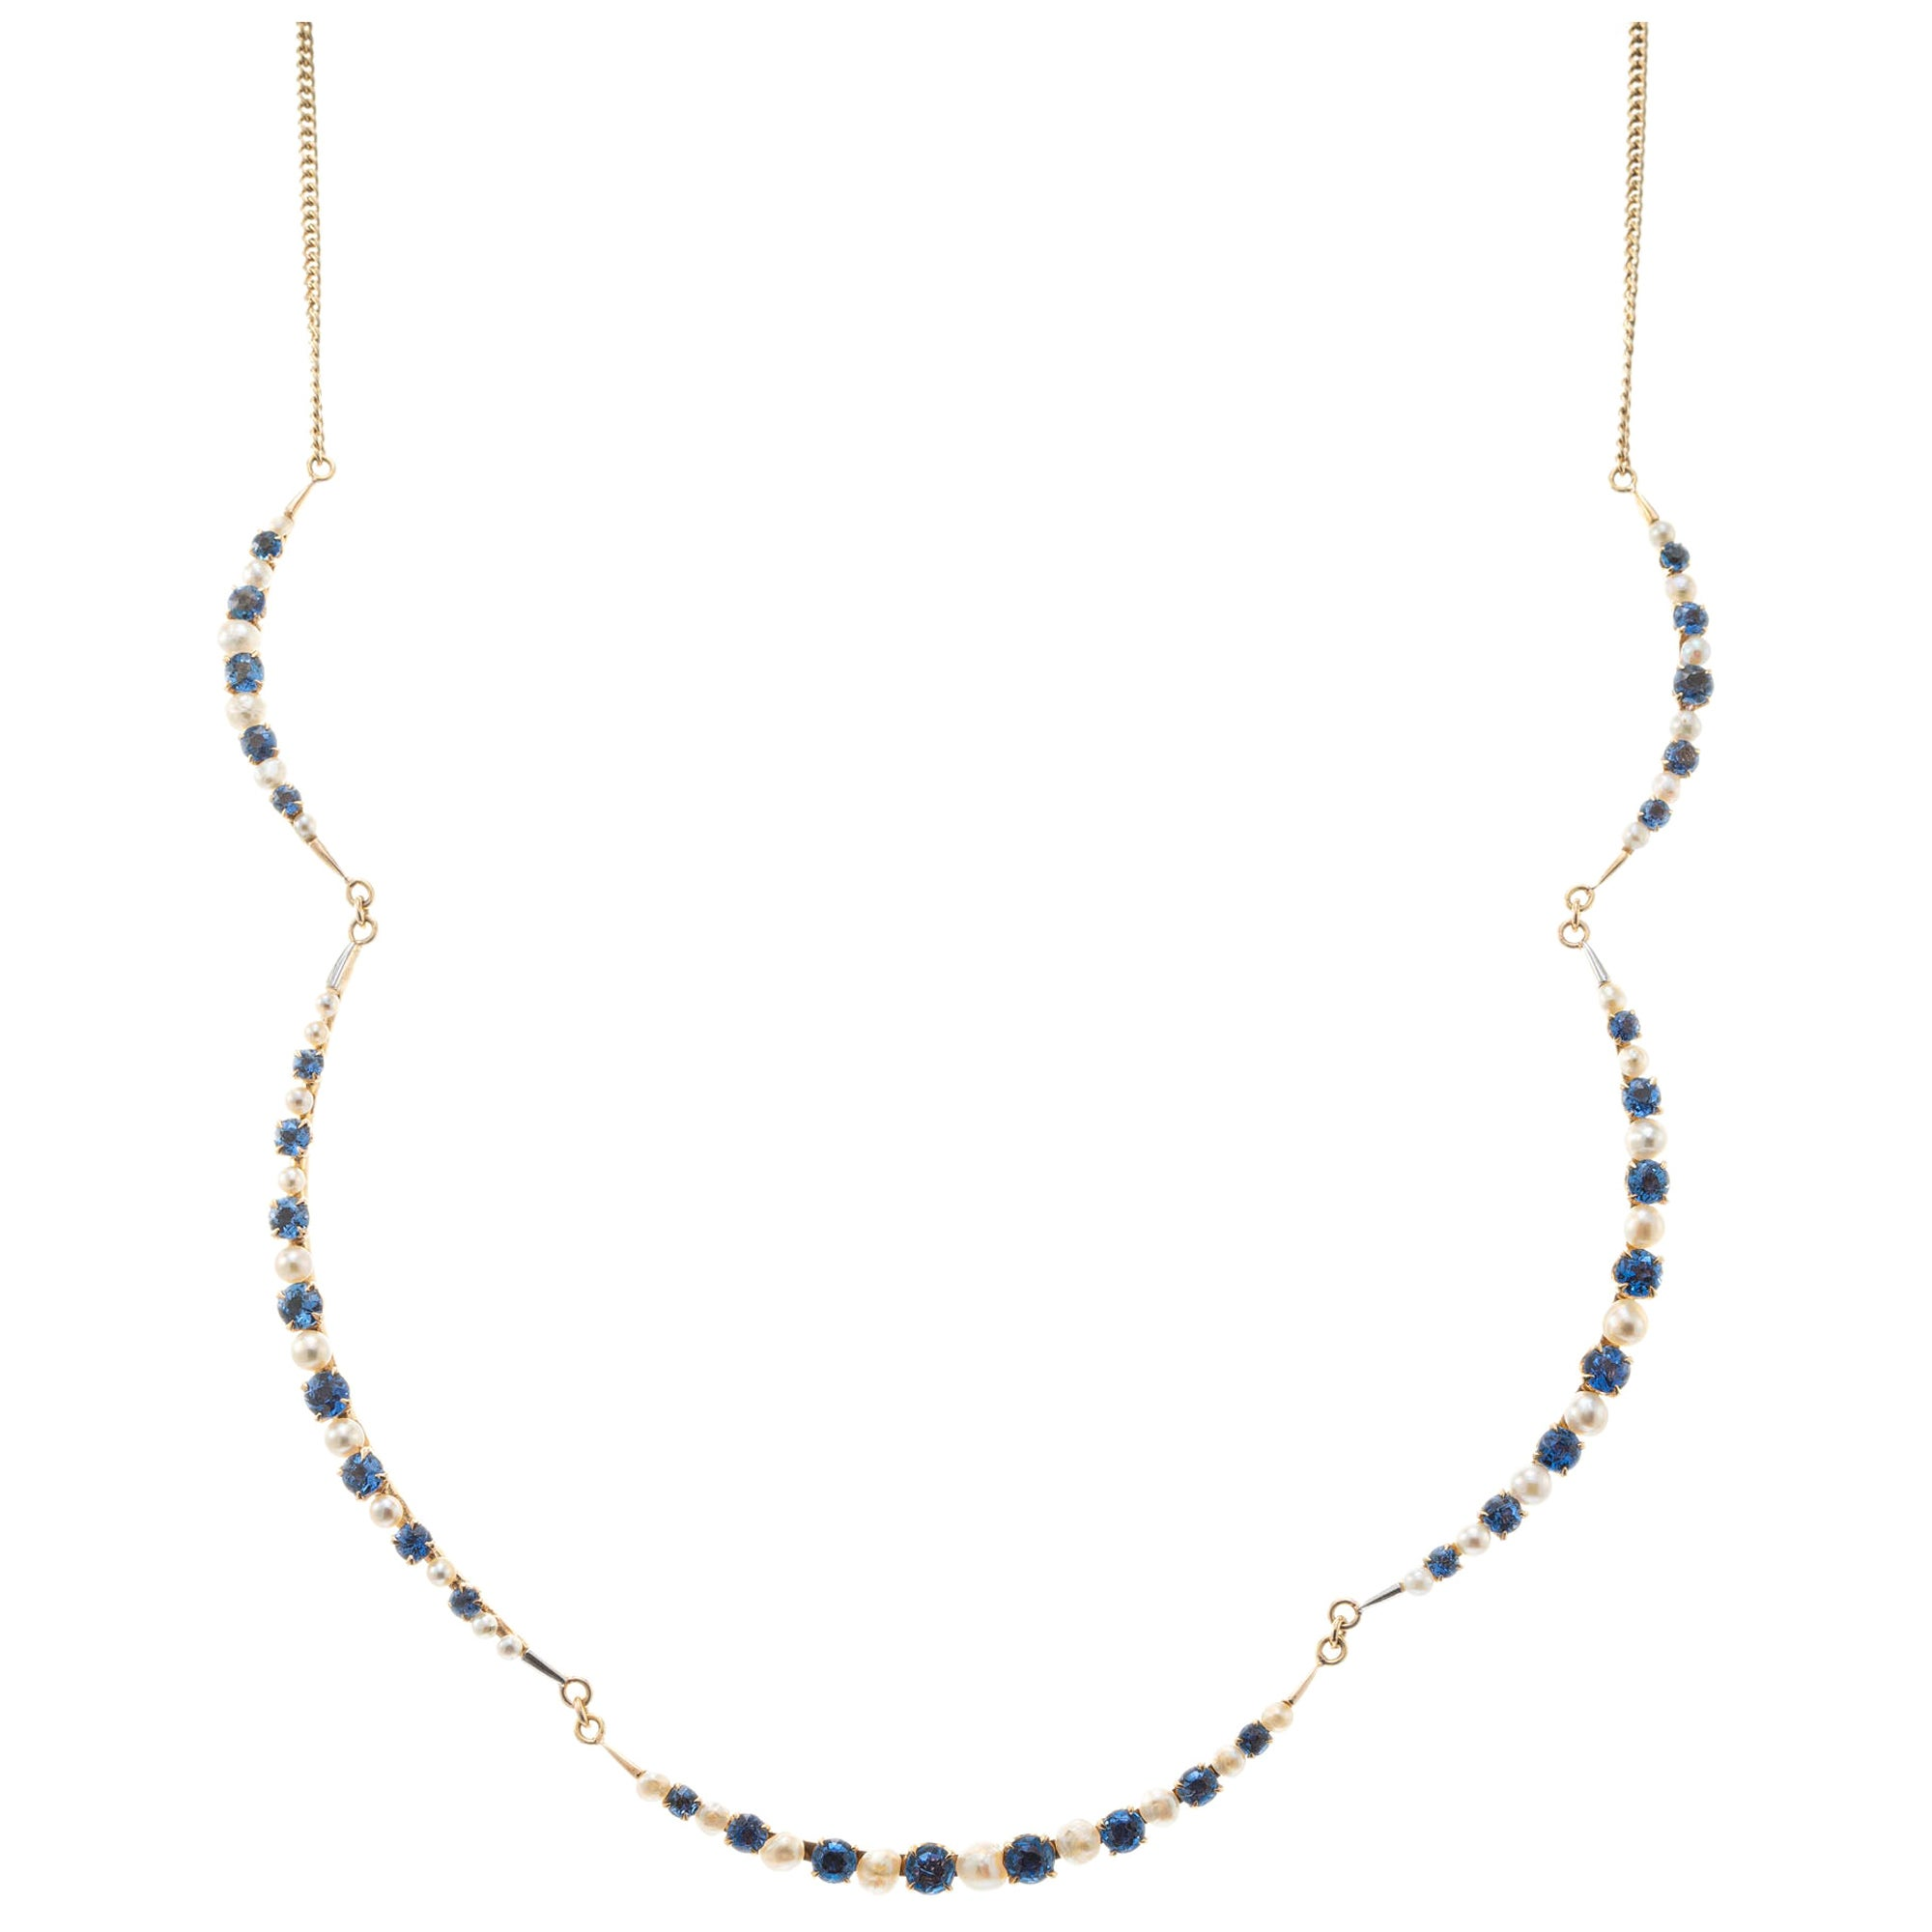 GIA Certified 4.25 Carat Blue Sapphire Pearl Yellow Gold Necklace